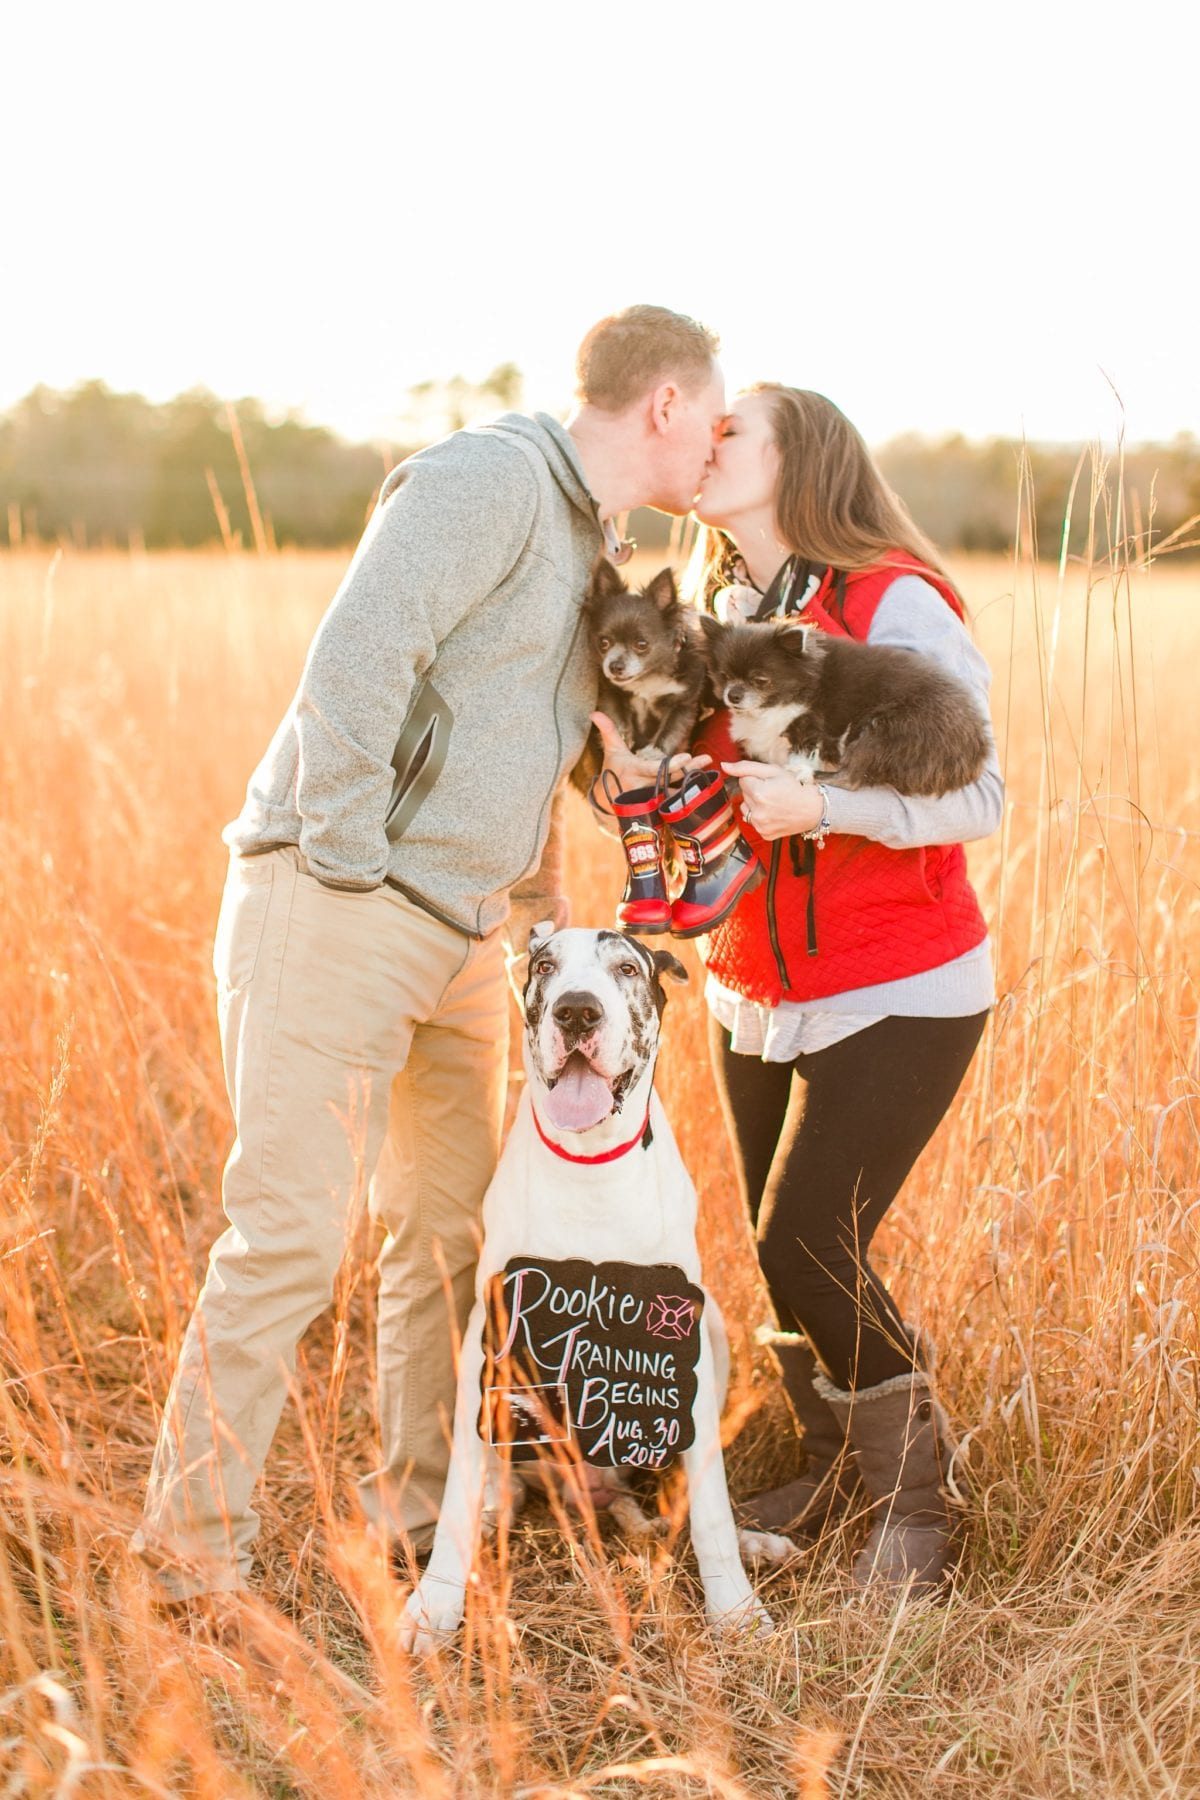 Firefighter Baby Announcement Virginia Photographer Megan Kelsey Photography Jeromy & Becky-131.jpg